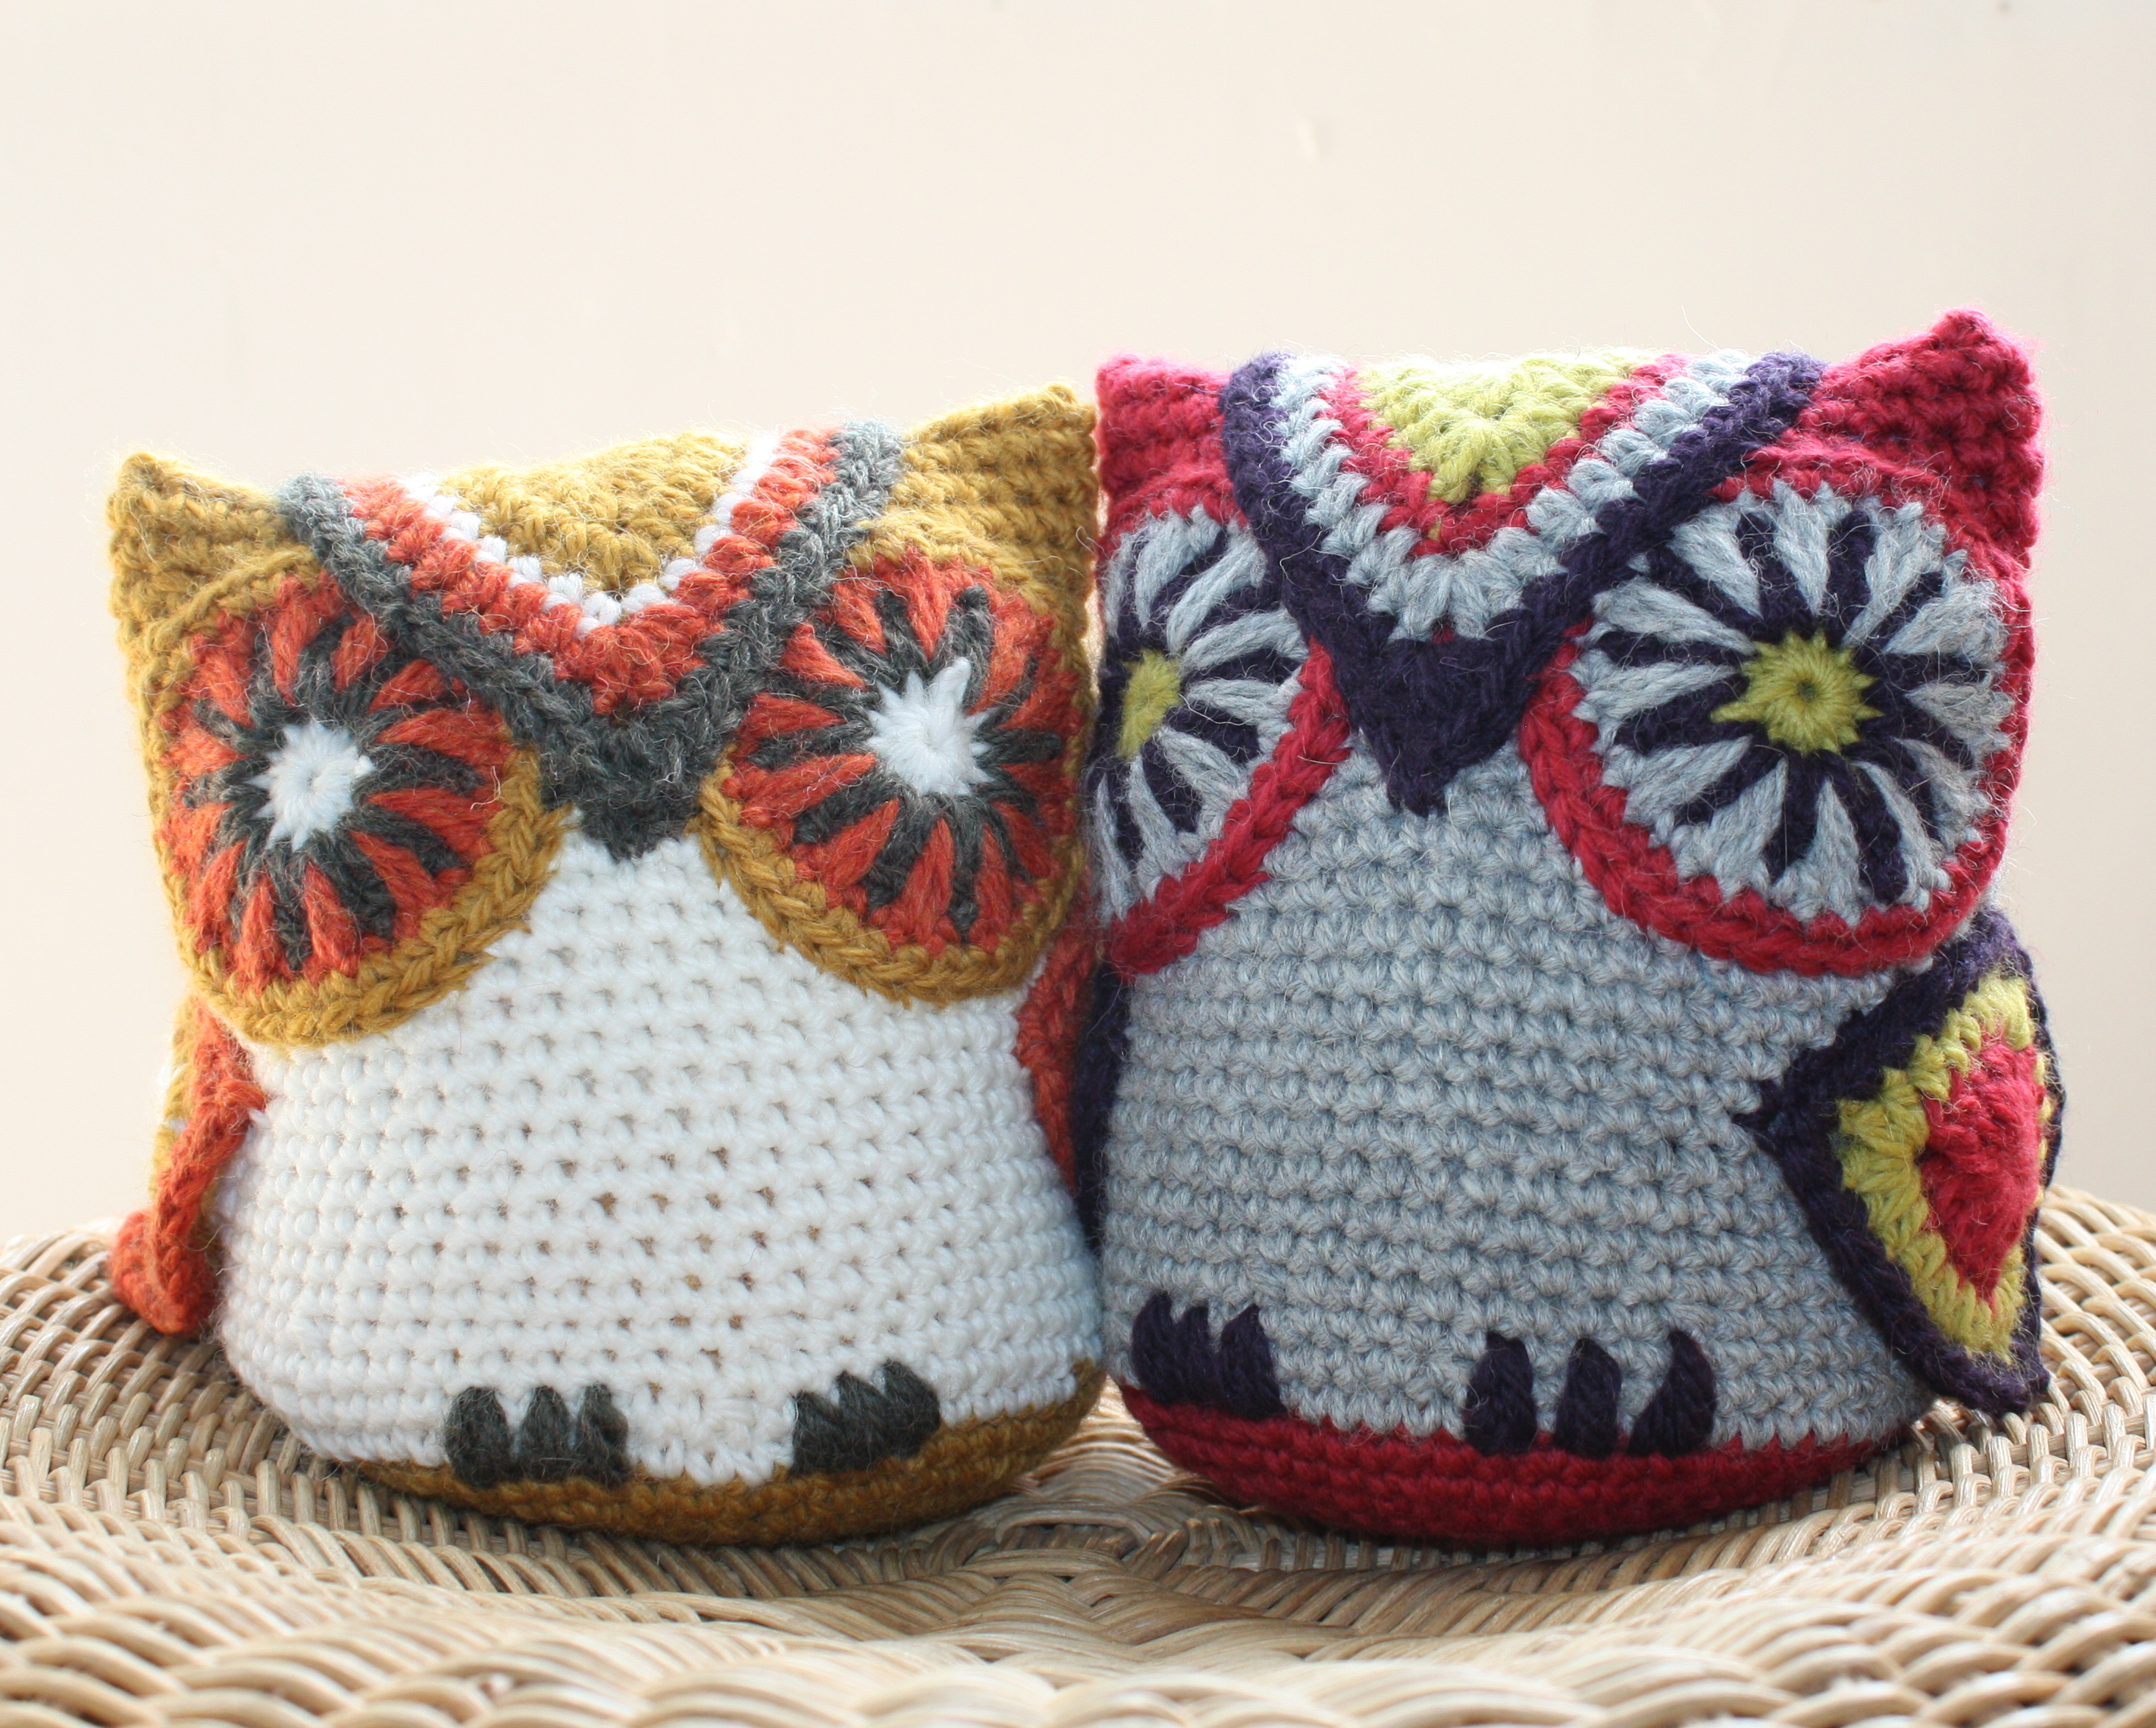 We Are Now Into The 3rd Week Of Our Latest Project U2013 The Amigurumi Owl Door  Stop. This Is A Project I Have Specially Designed For My Students To Build  On ...